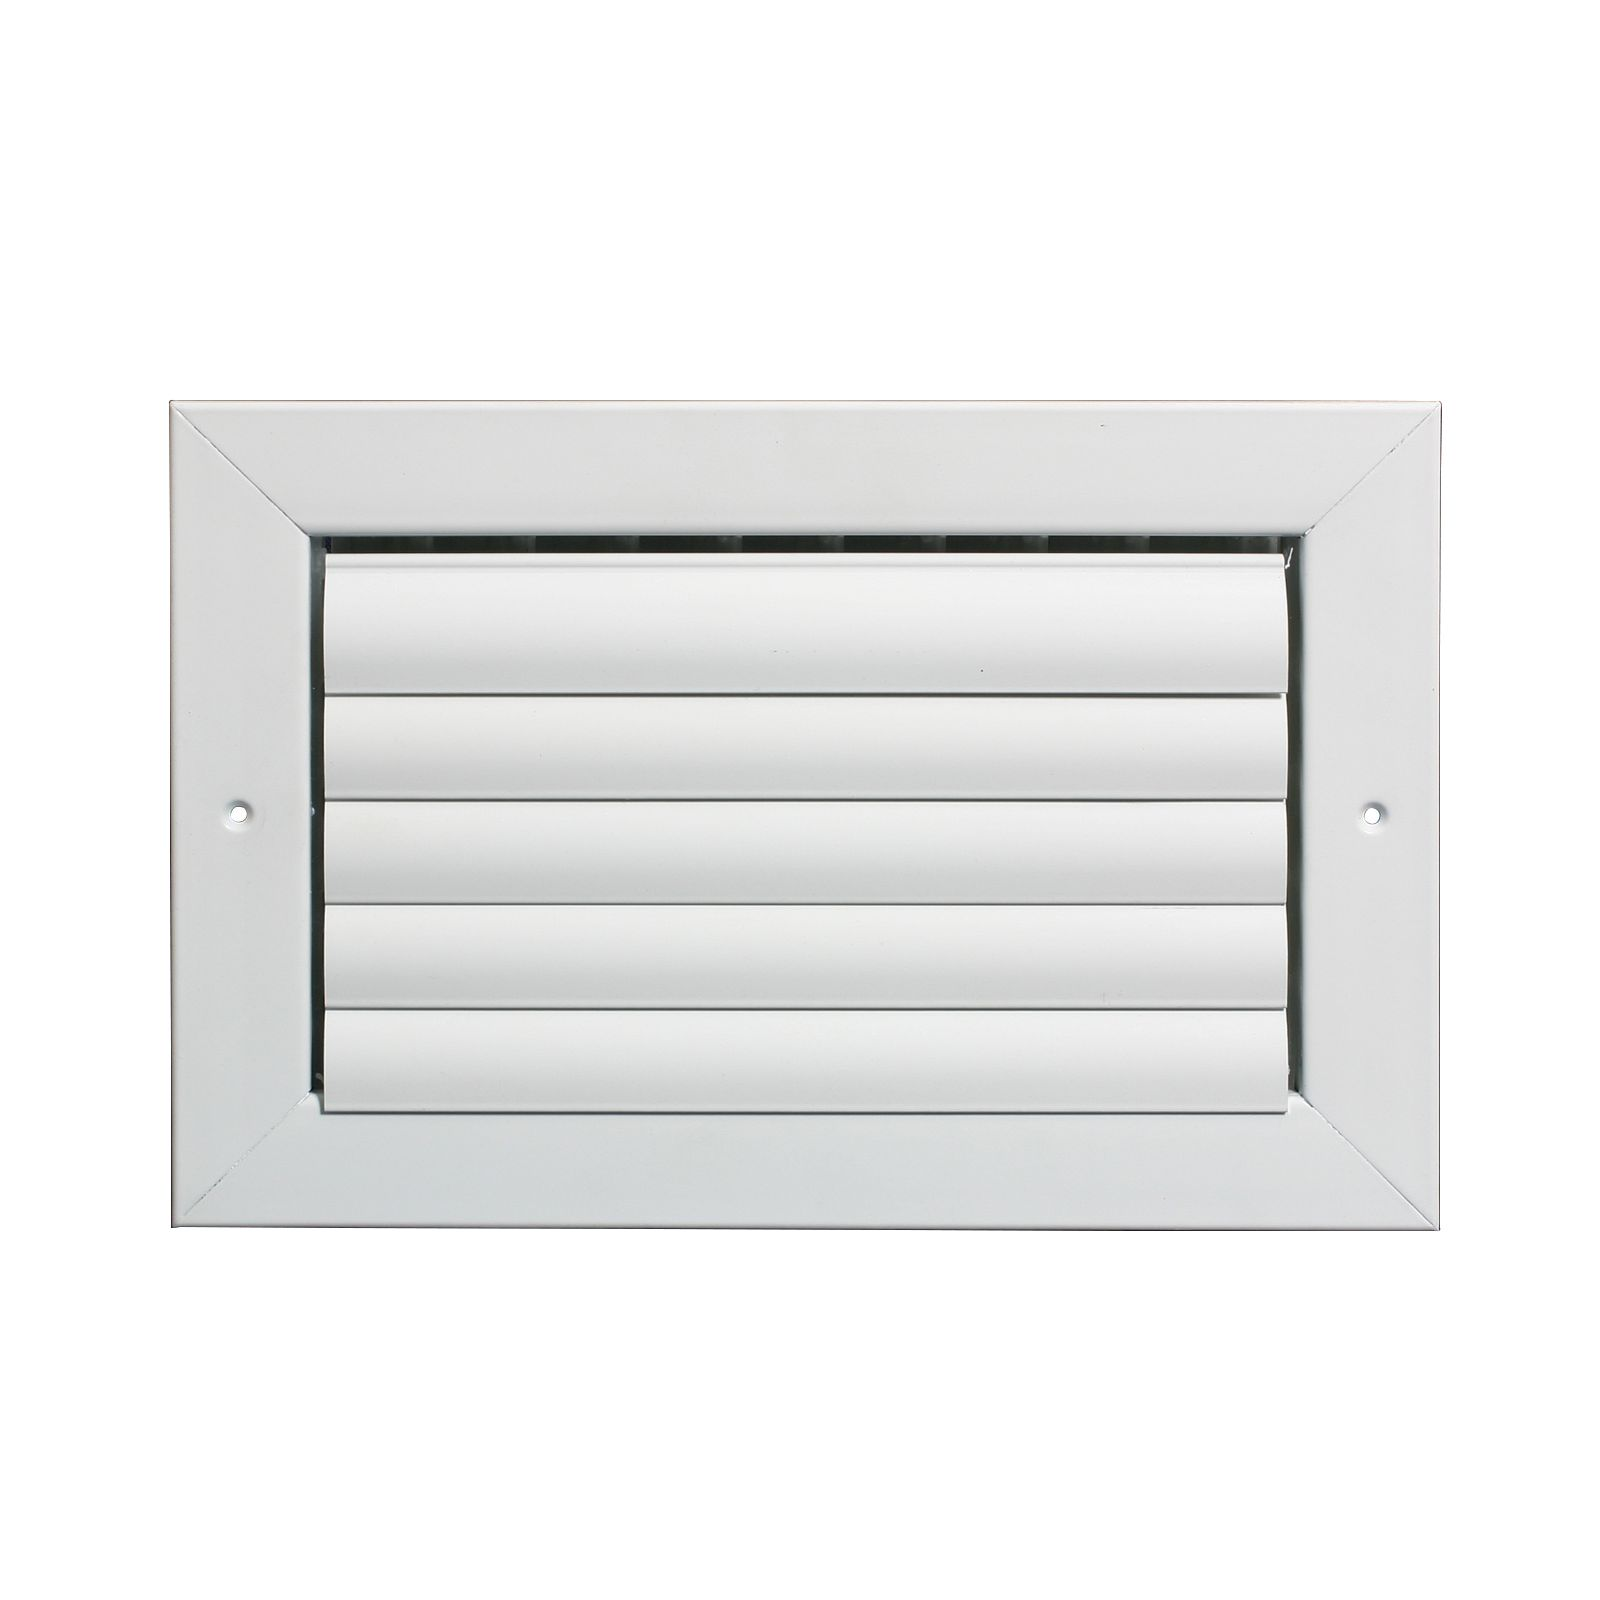 "Grille Tech CL1M1208 - Aluminum Ceiling 1-Way Deflection Supply, Multi-shutter 12"" X 8"" White"